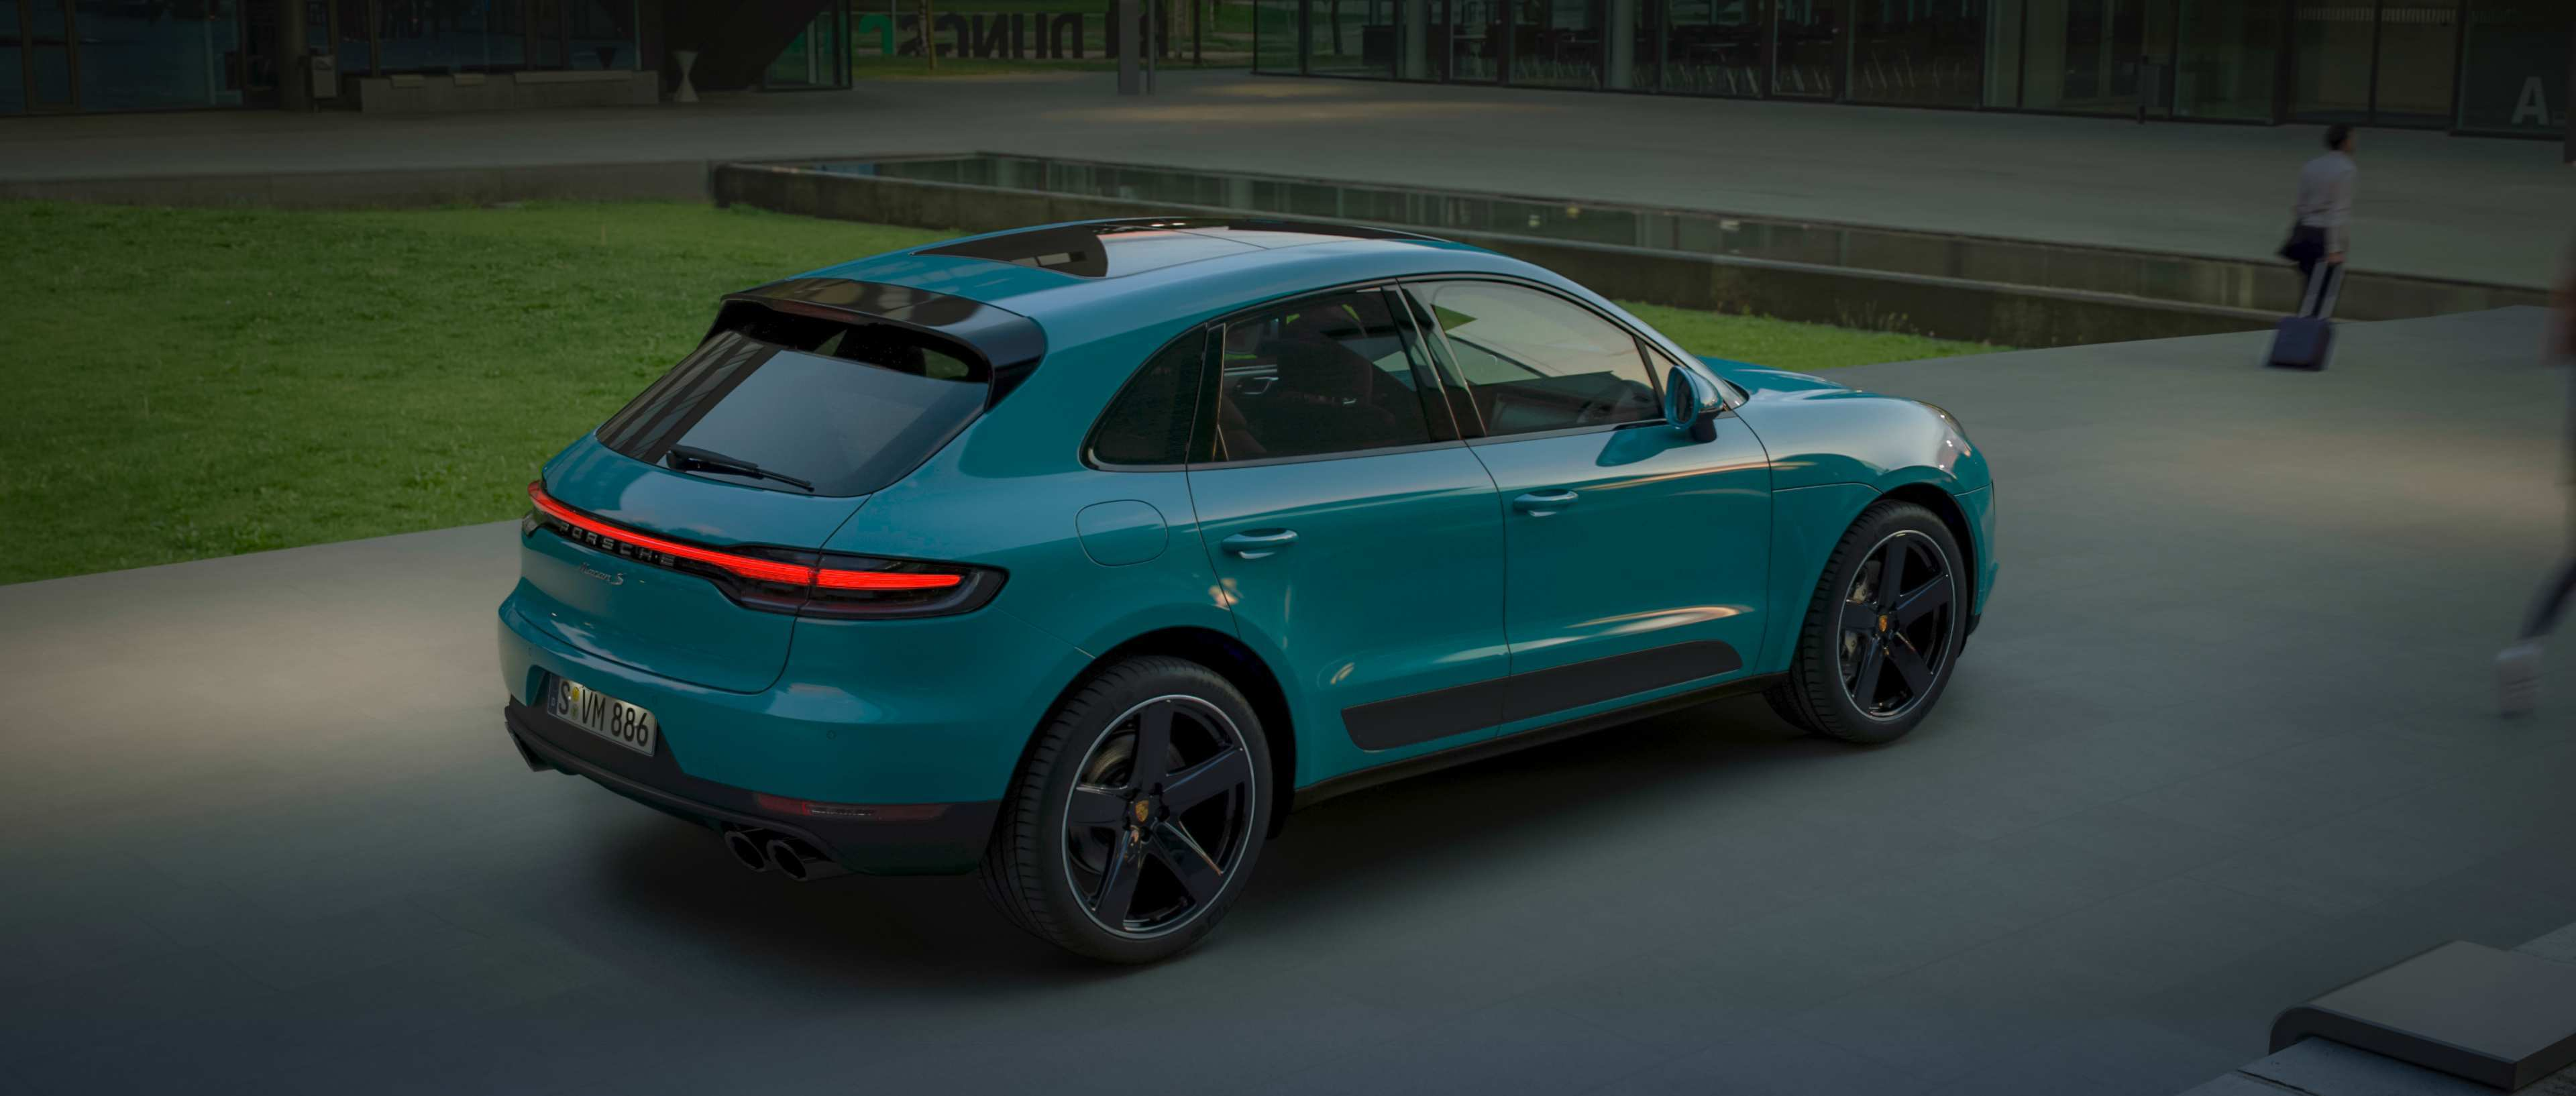 93 All New 2019 Porsche Macan Gts Price And Release Date